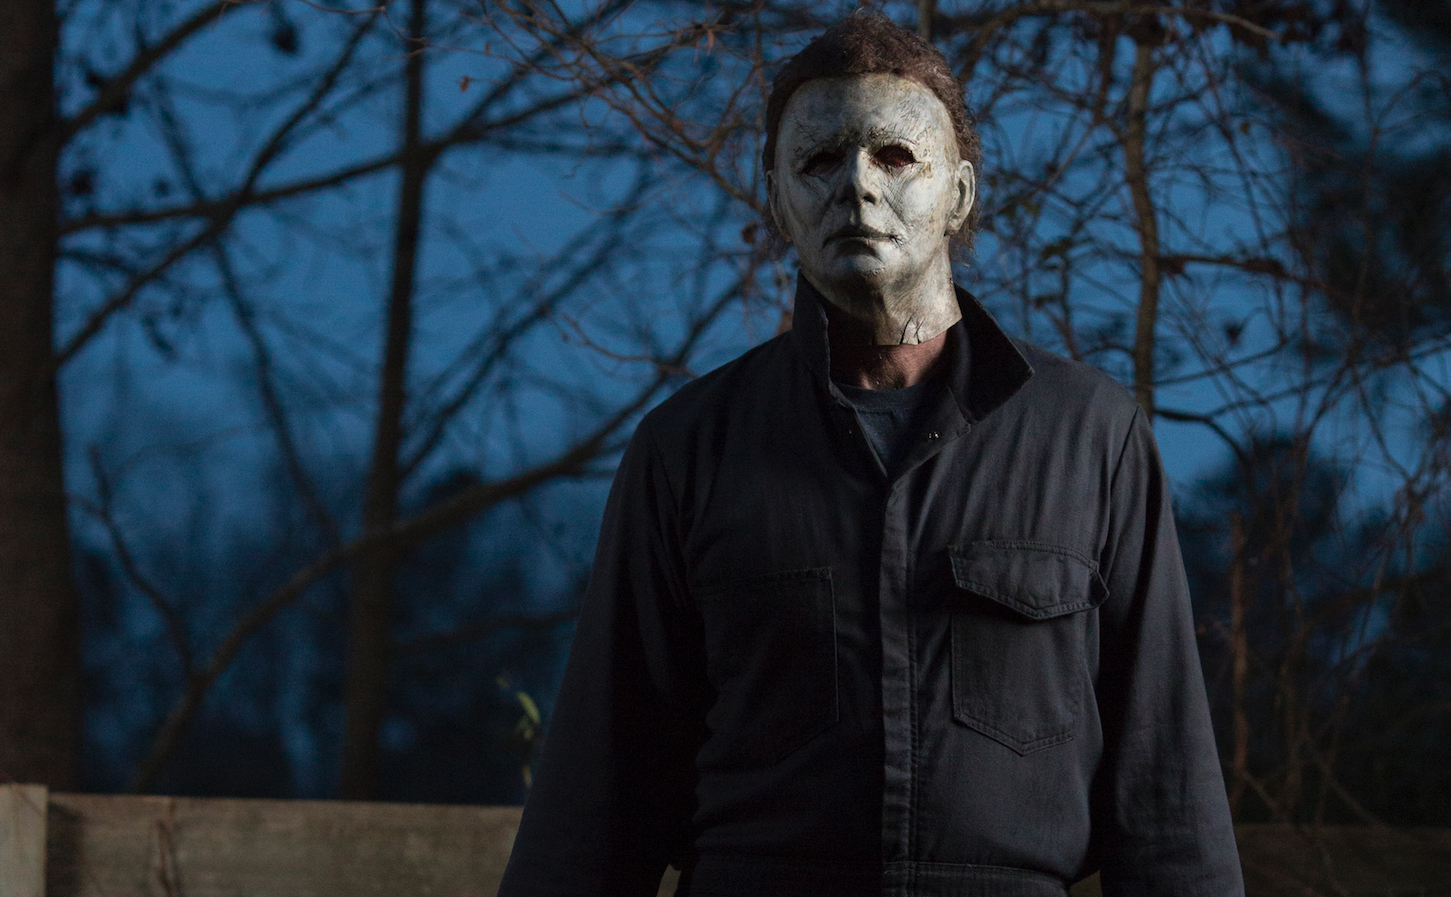 Work Has Already Begun On Next \u0027Halloween\u0027 Film [Exclusive]